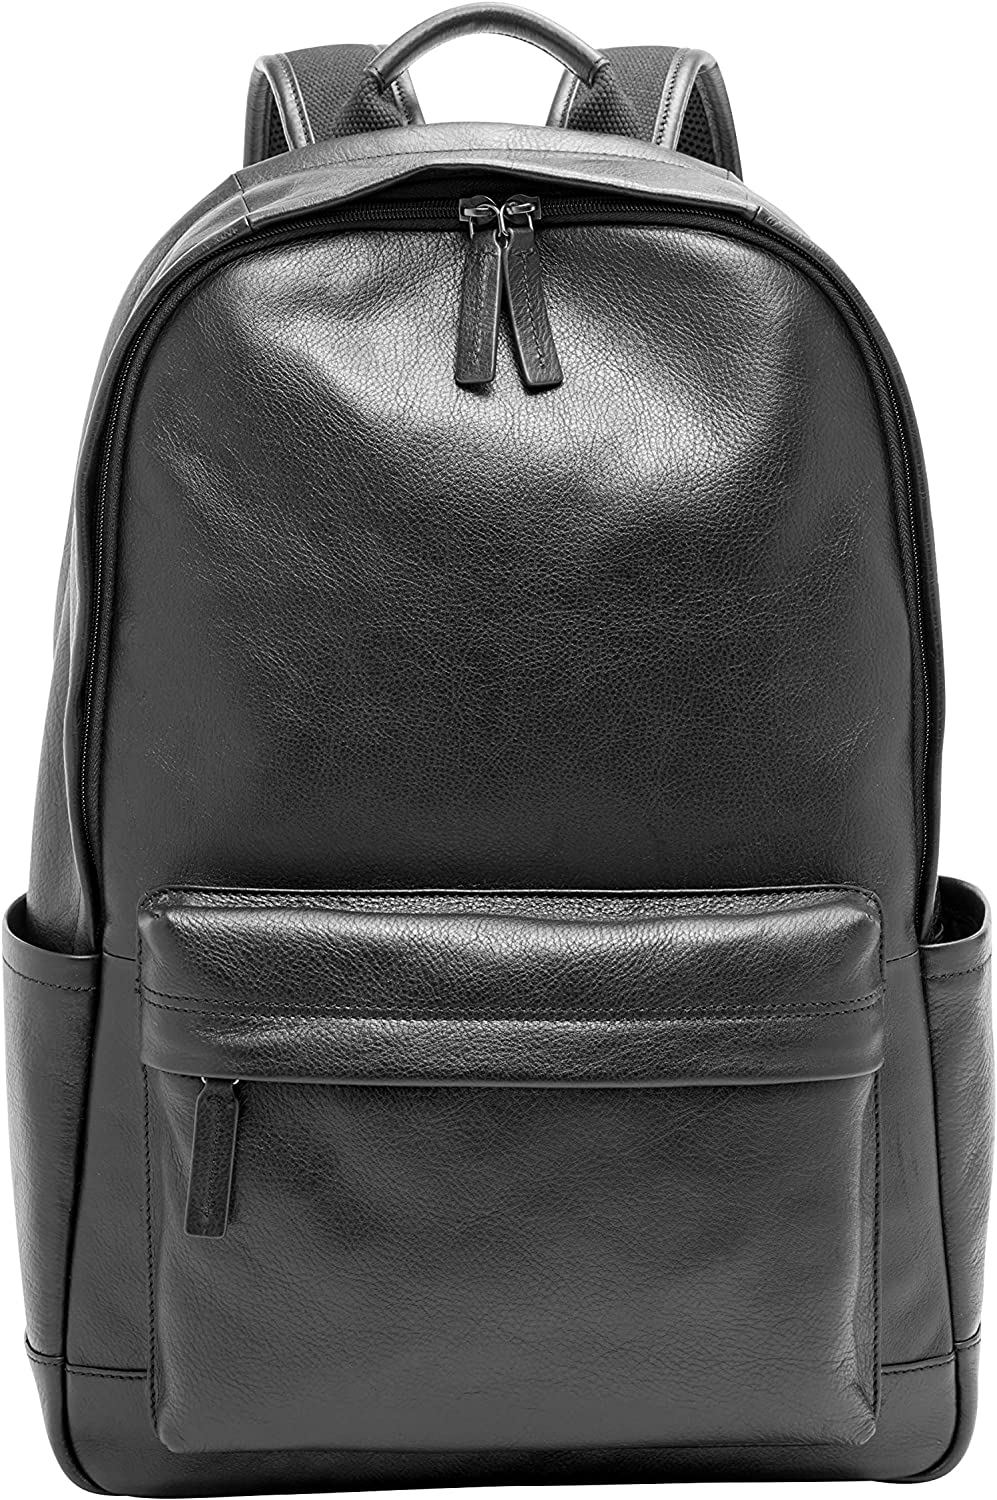 Fossil Men's Buckner Leather Backpack